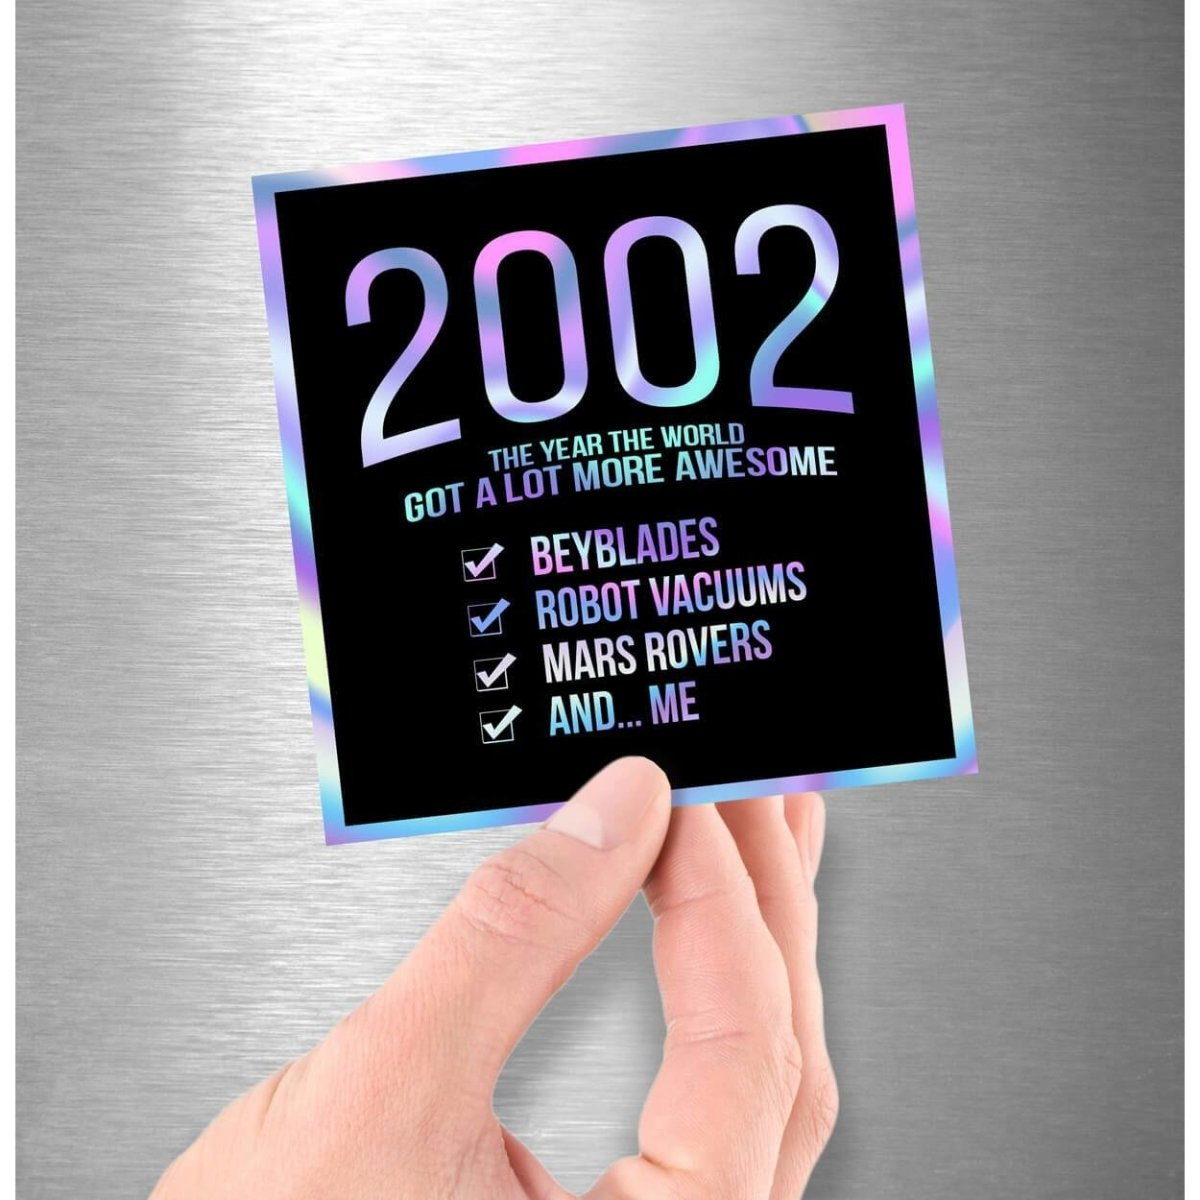 2002! Hologram Birth Year Sticker - Dan Pearce Sticker Shop